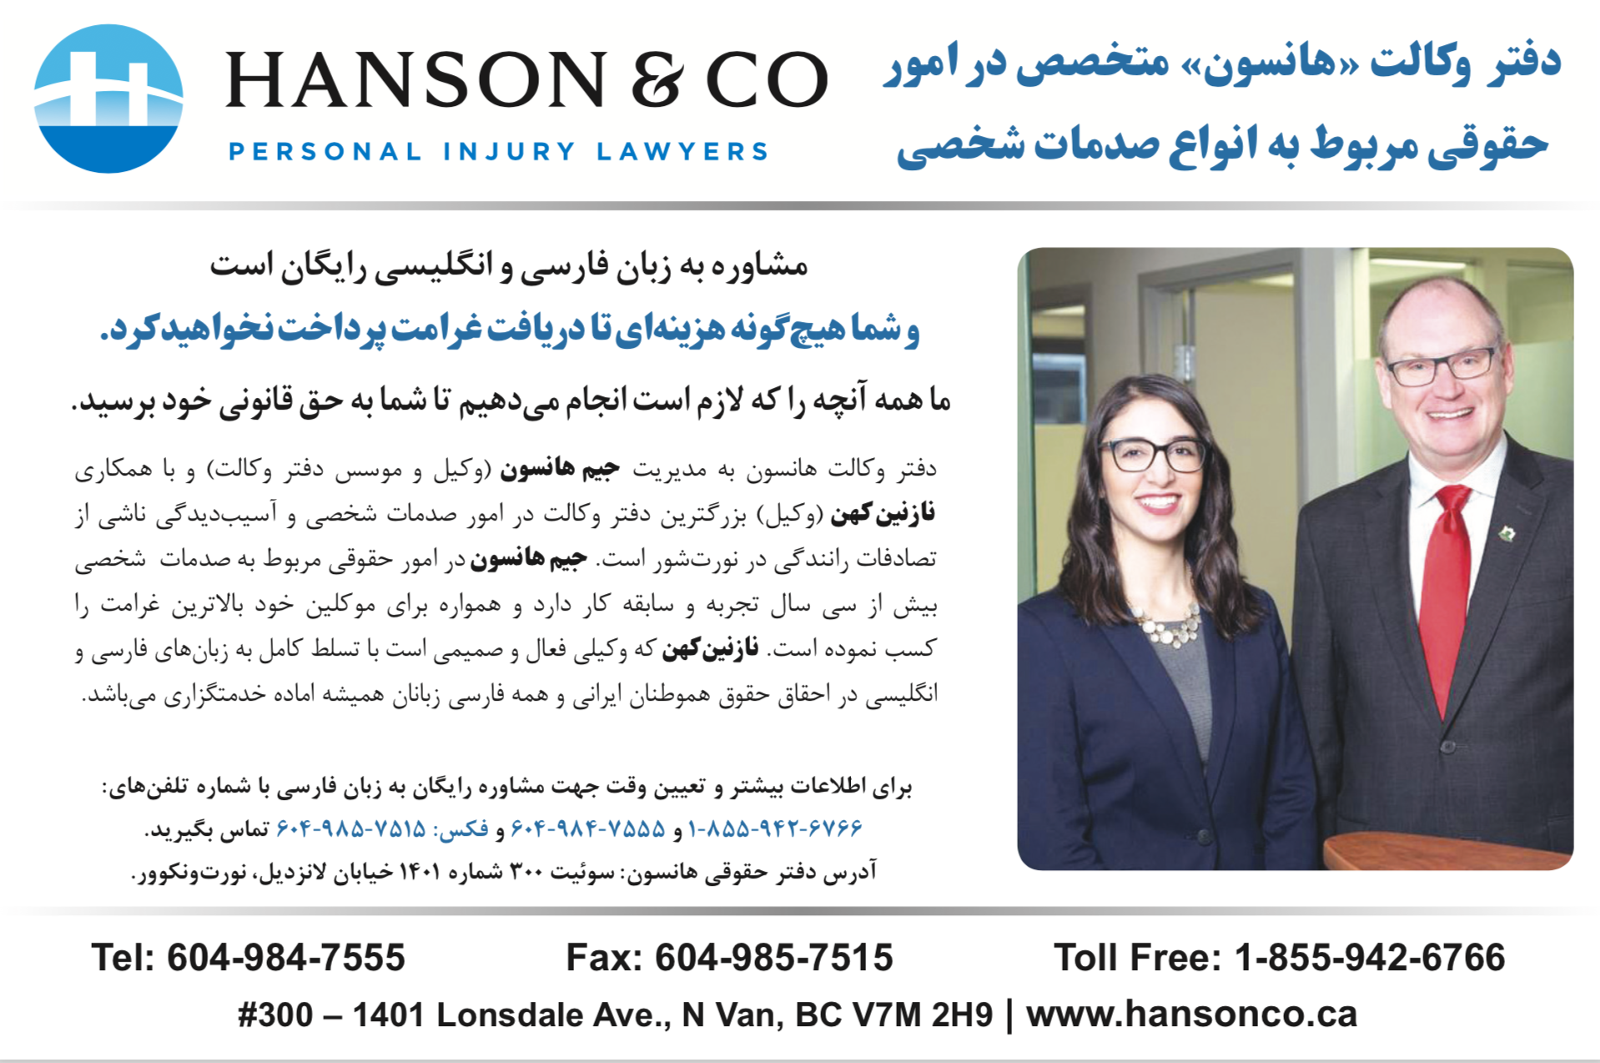 Legal services in farsi. Personal Injury Lawyers that can speak farsi.